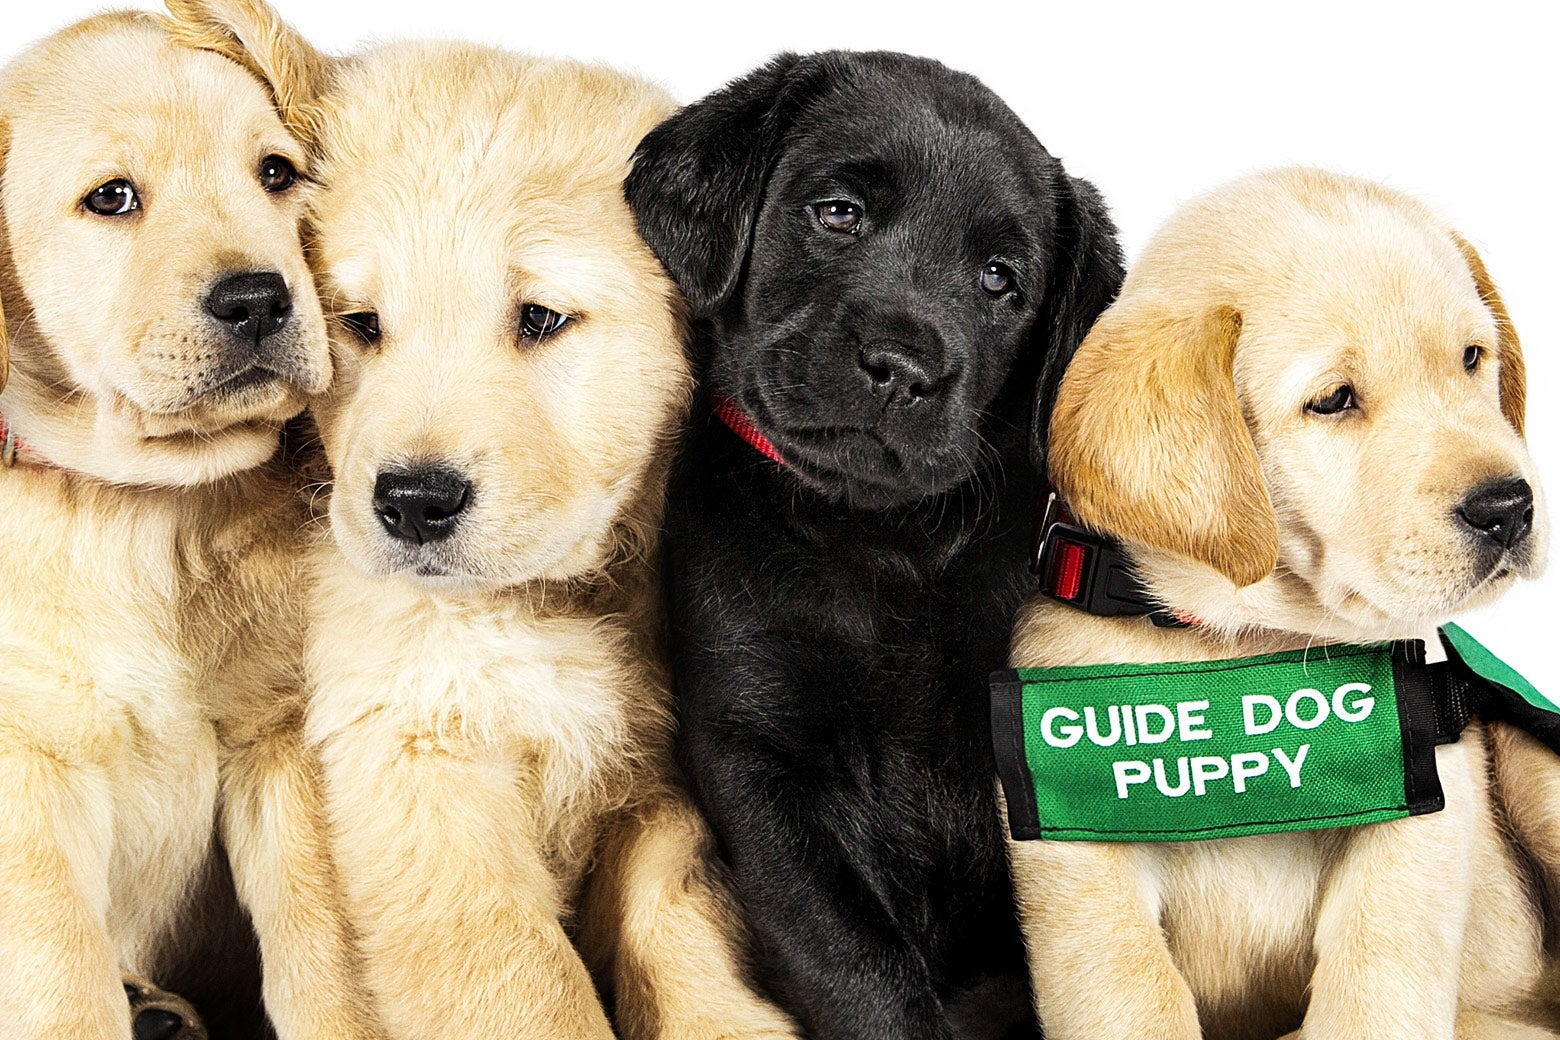 Pick Of The Litter Movie Review Documentary About Guide Dogs Is Like Survivor With Puppies